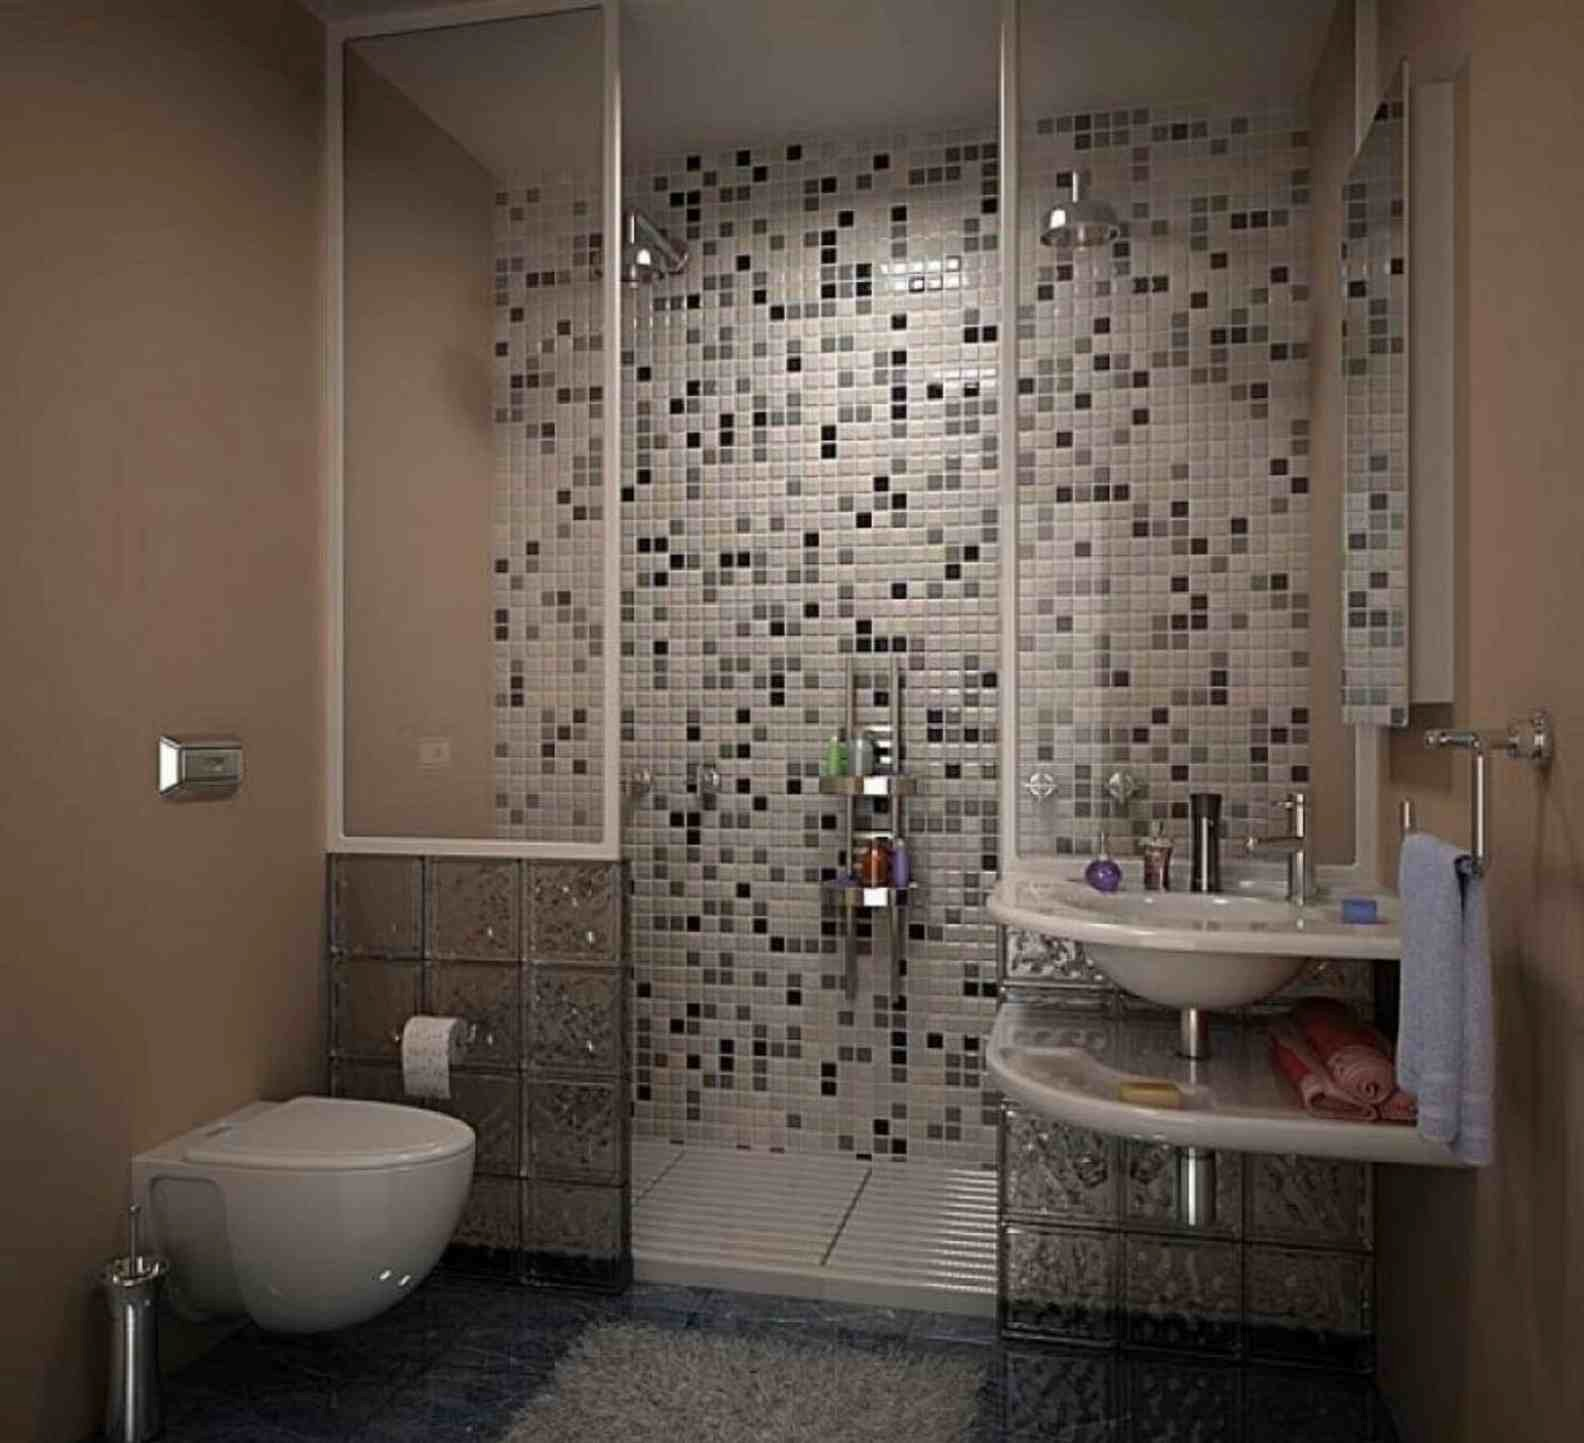 Tile Bathroom Ideas Wonderful Nice Tile Ideas for Small Bathrooms Tile Ideas for Small Bathrooms Architecture